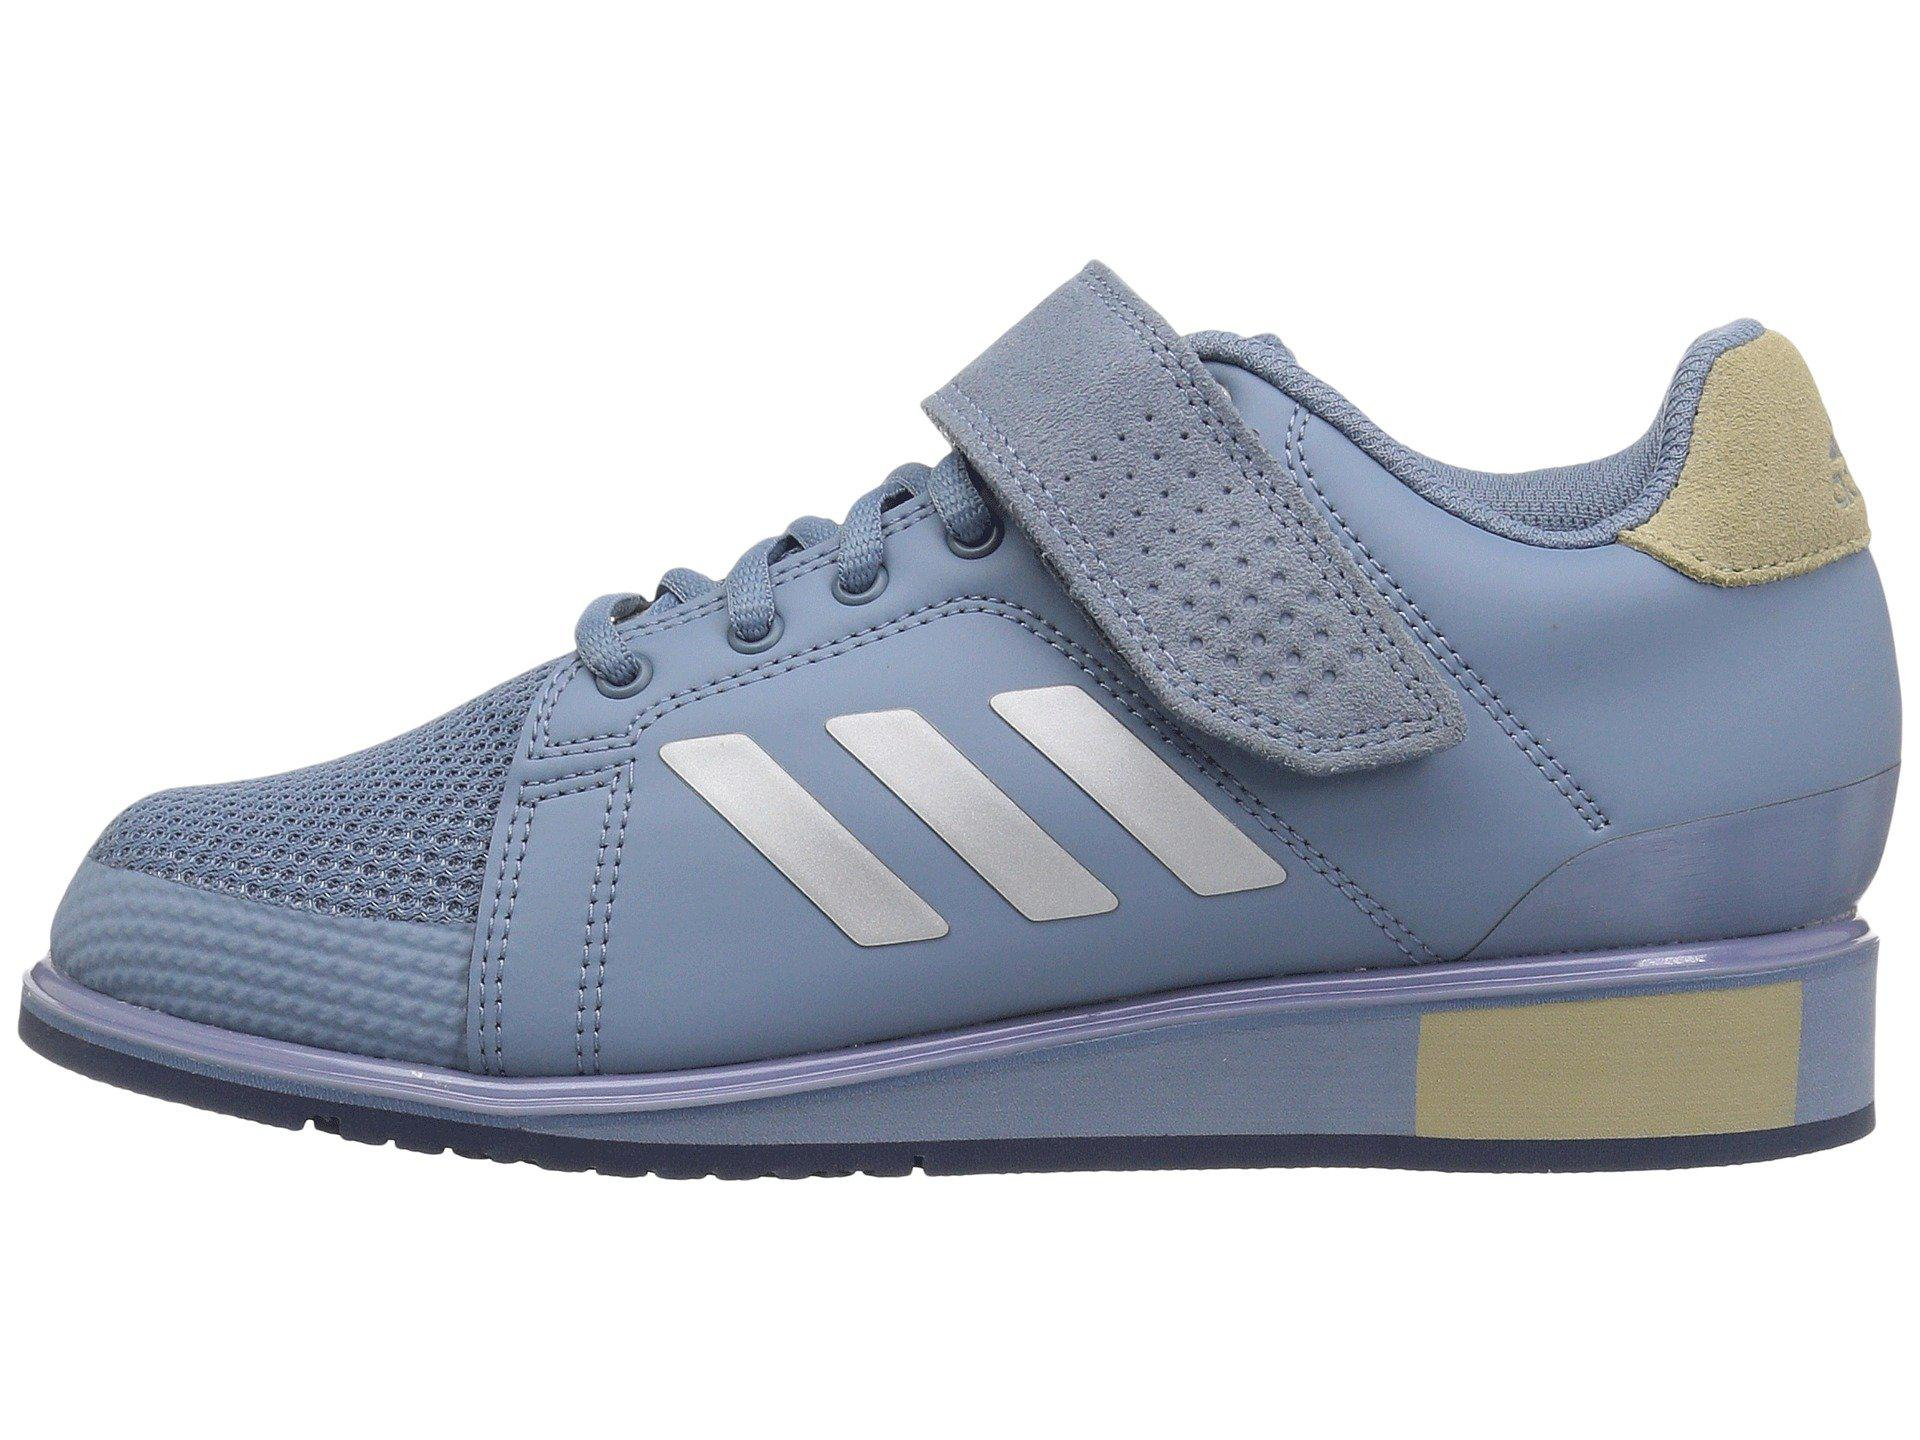 adidas Synthetic Power Perfect Iii in